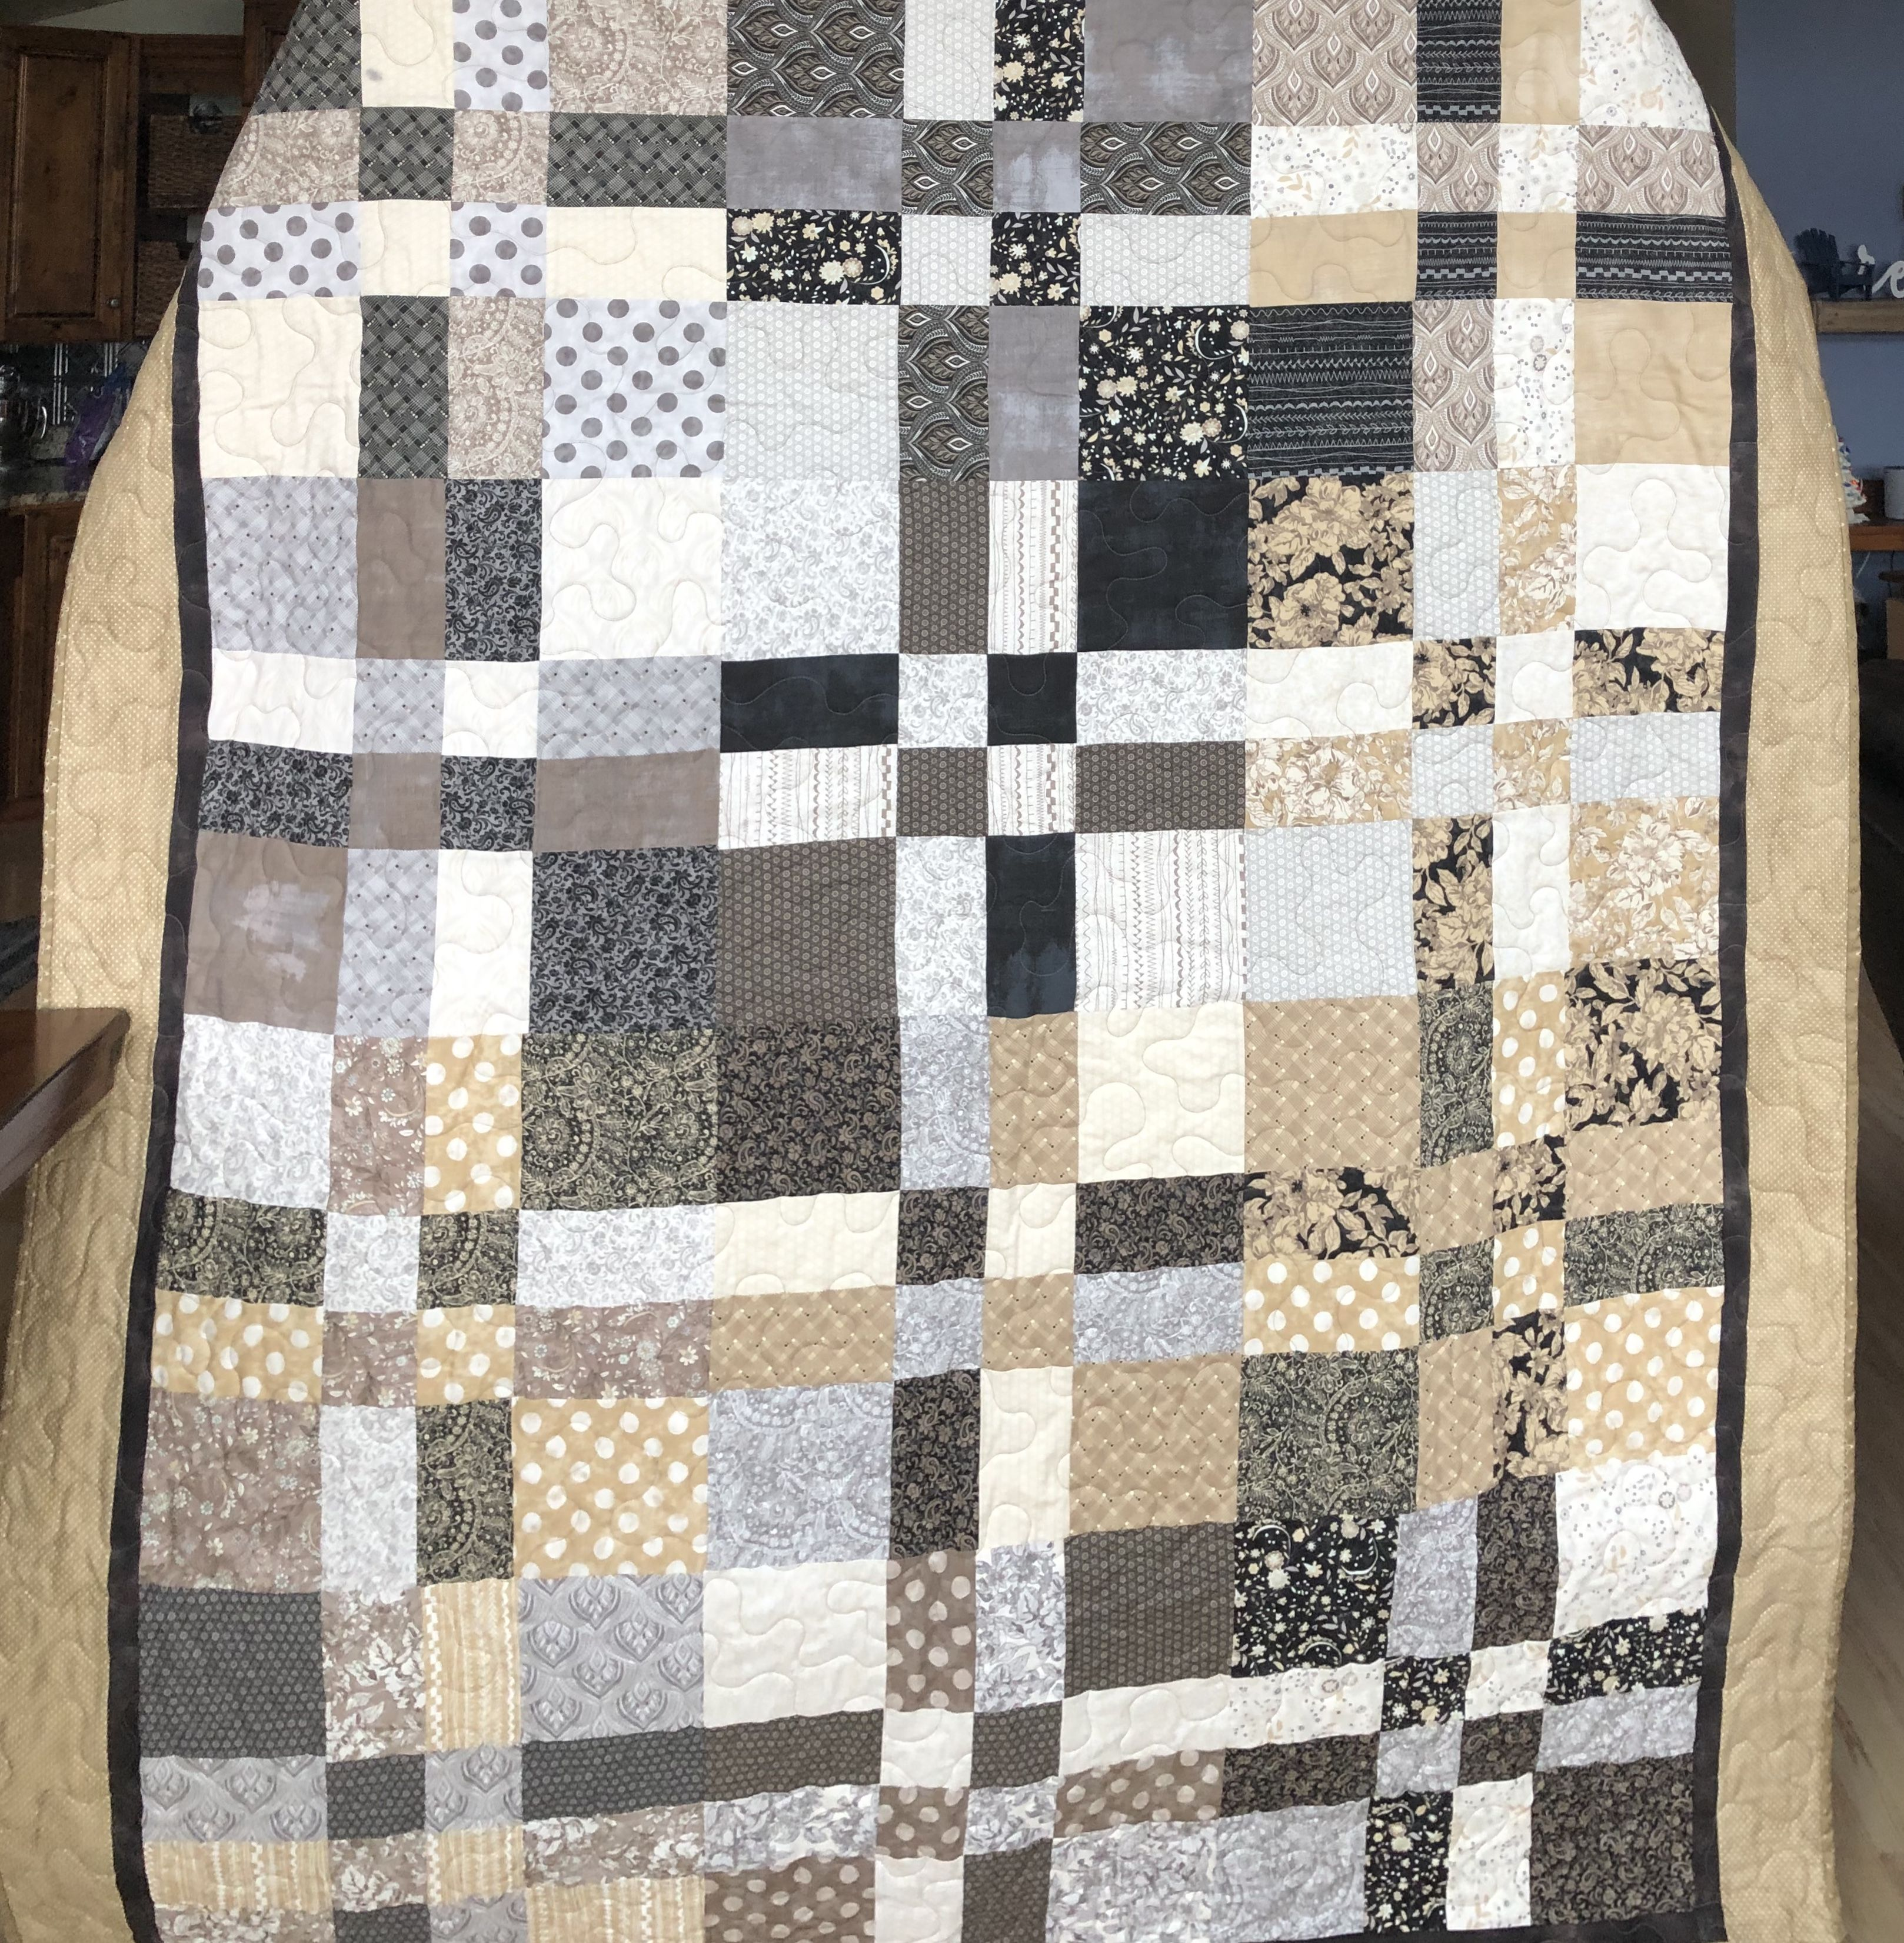 Pin by Sherrie Baker on My quilts Quilts, Blanket, Bed